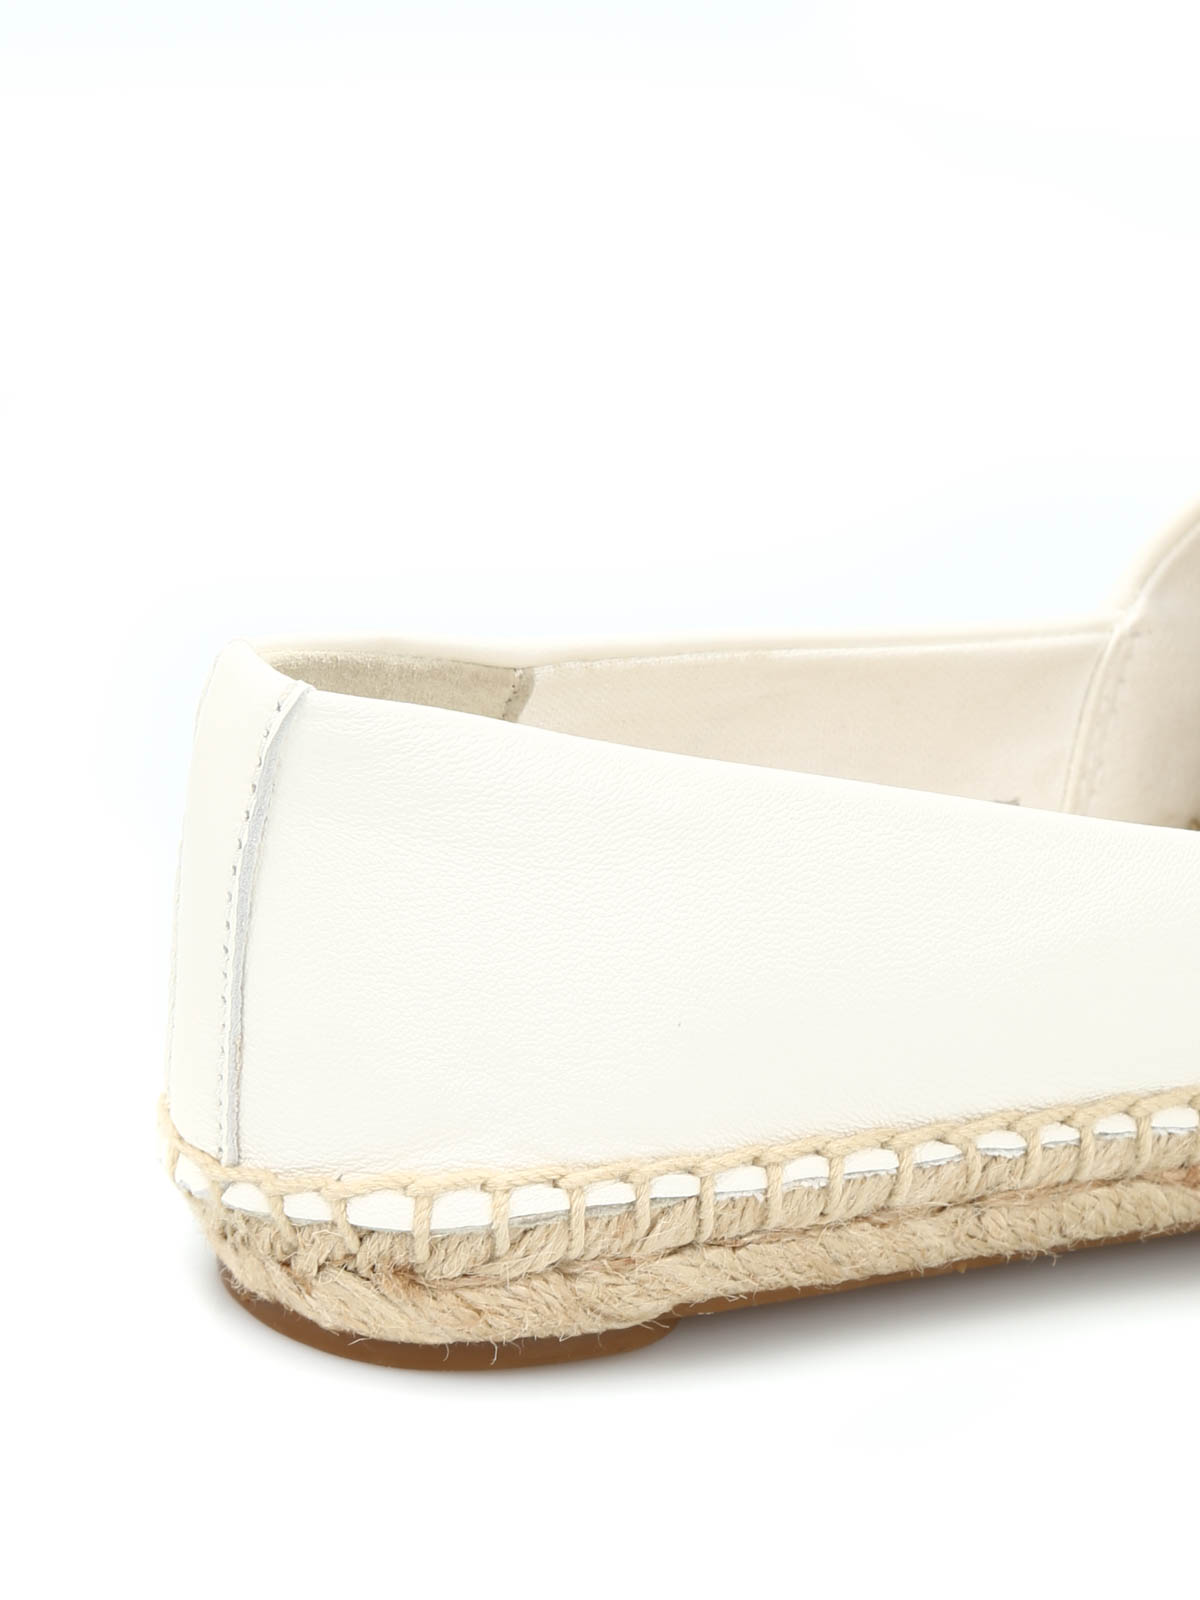 Discover the world's most comfortable espadrilles for men and women that are Made in Spain. Get comfort and style with our espadrille flats and wedges.